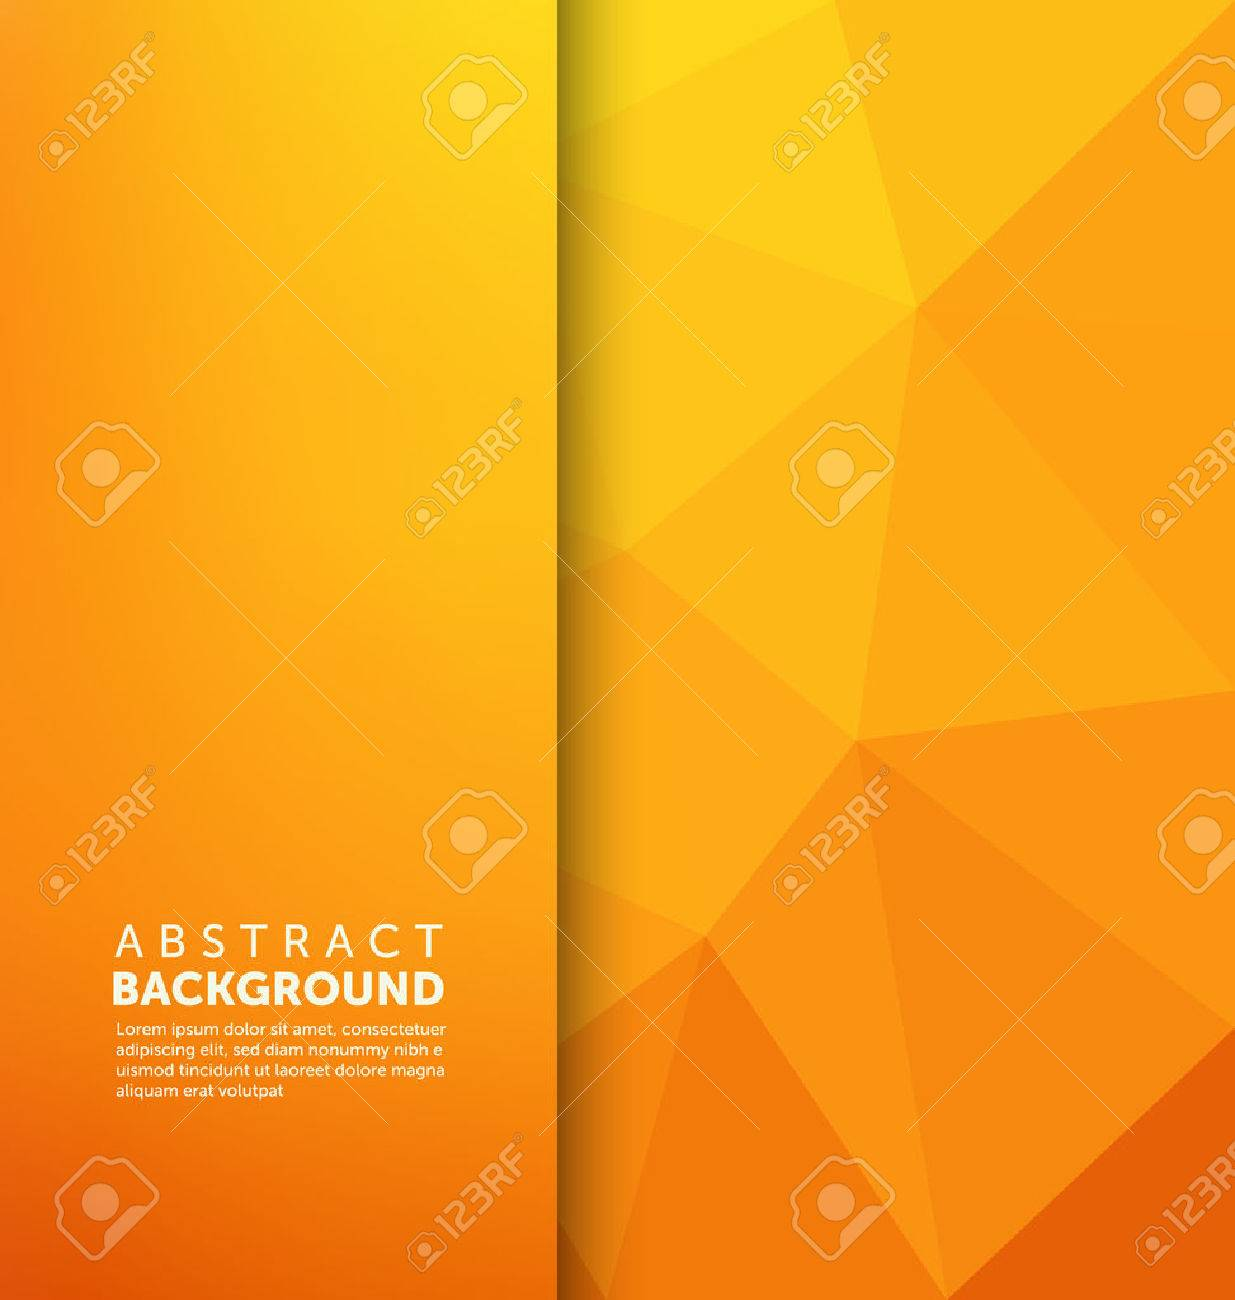 Abstract Background - Triangle and blurred banner design - 45168473